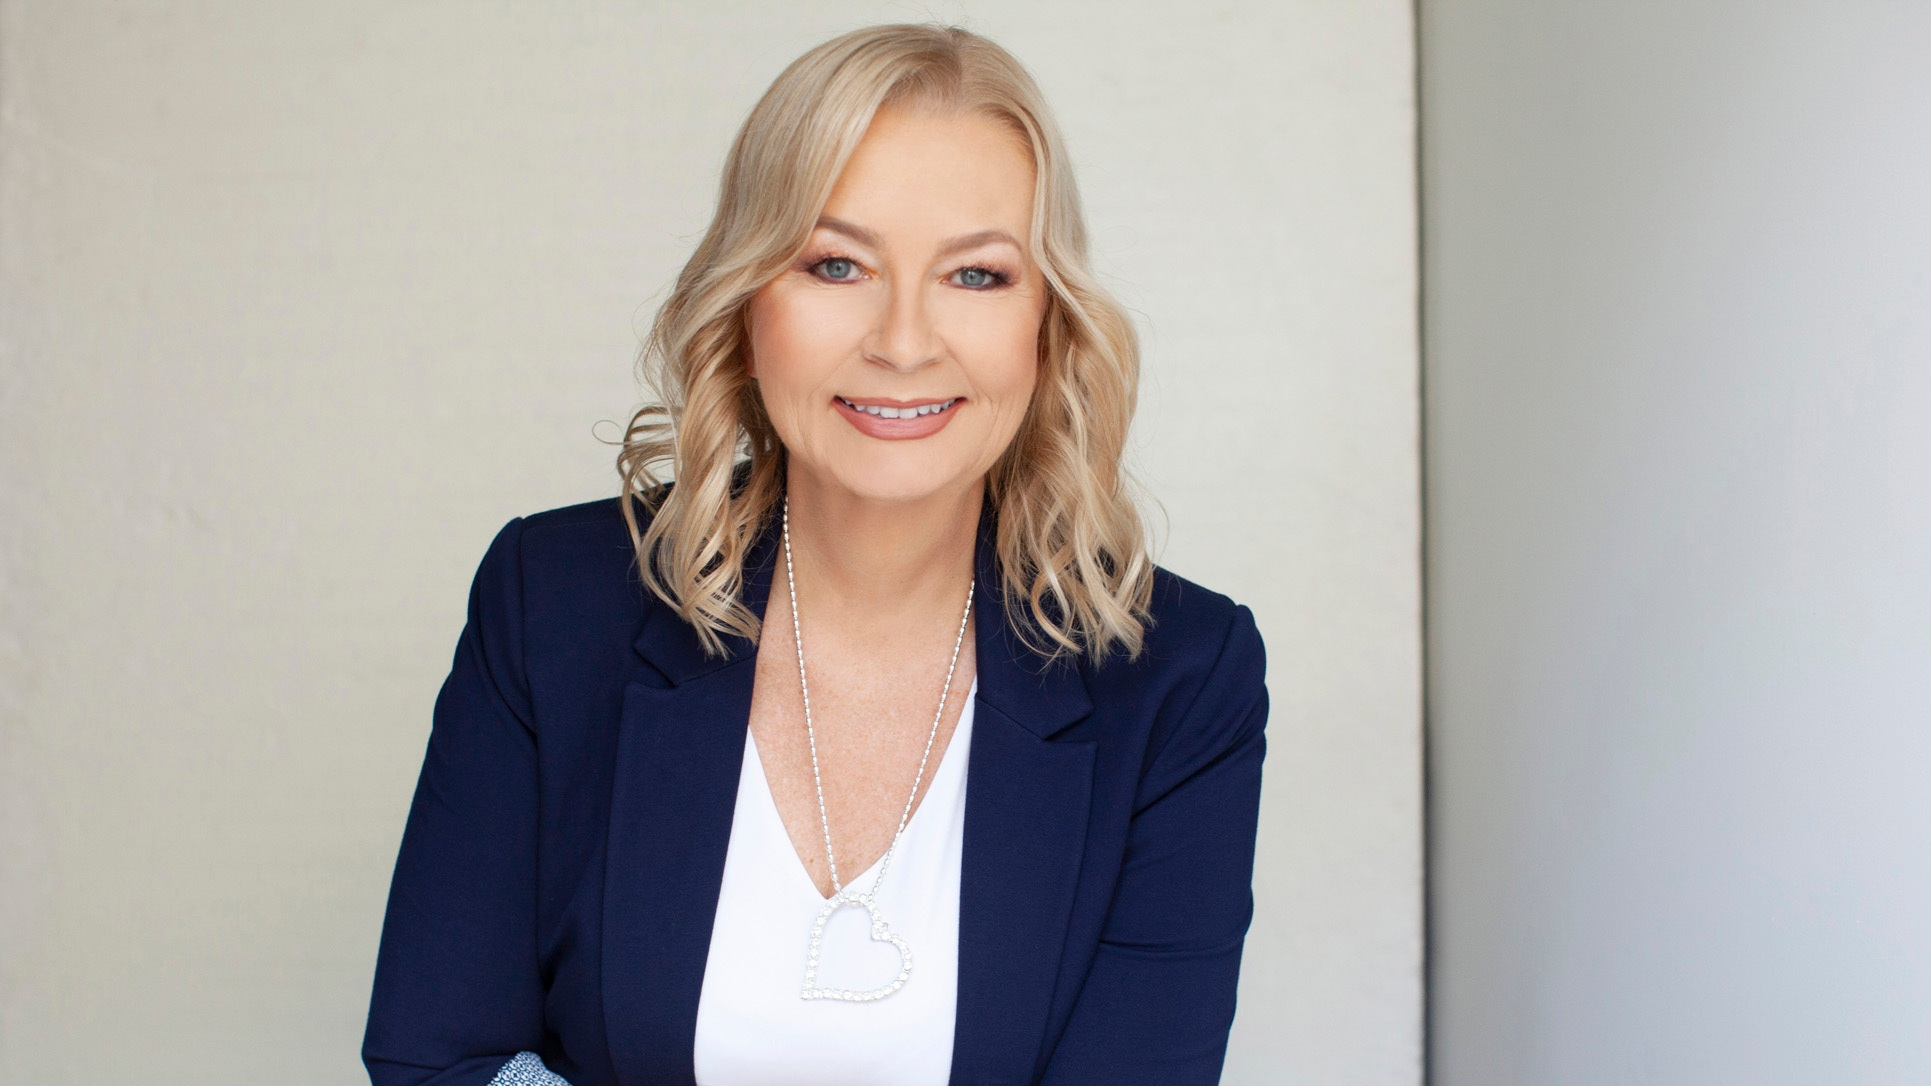 Kym Cousins - Kym is best known for enabling personal and business growth through mentoring women in business. She is a specialist in sales, marketing, communication and leadership.